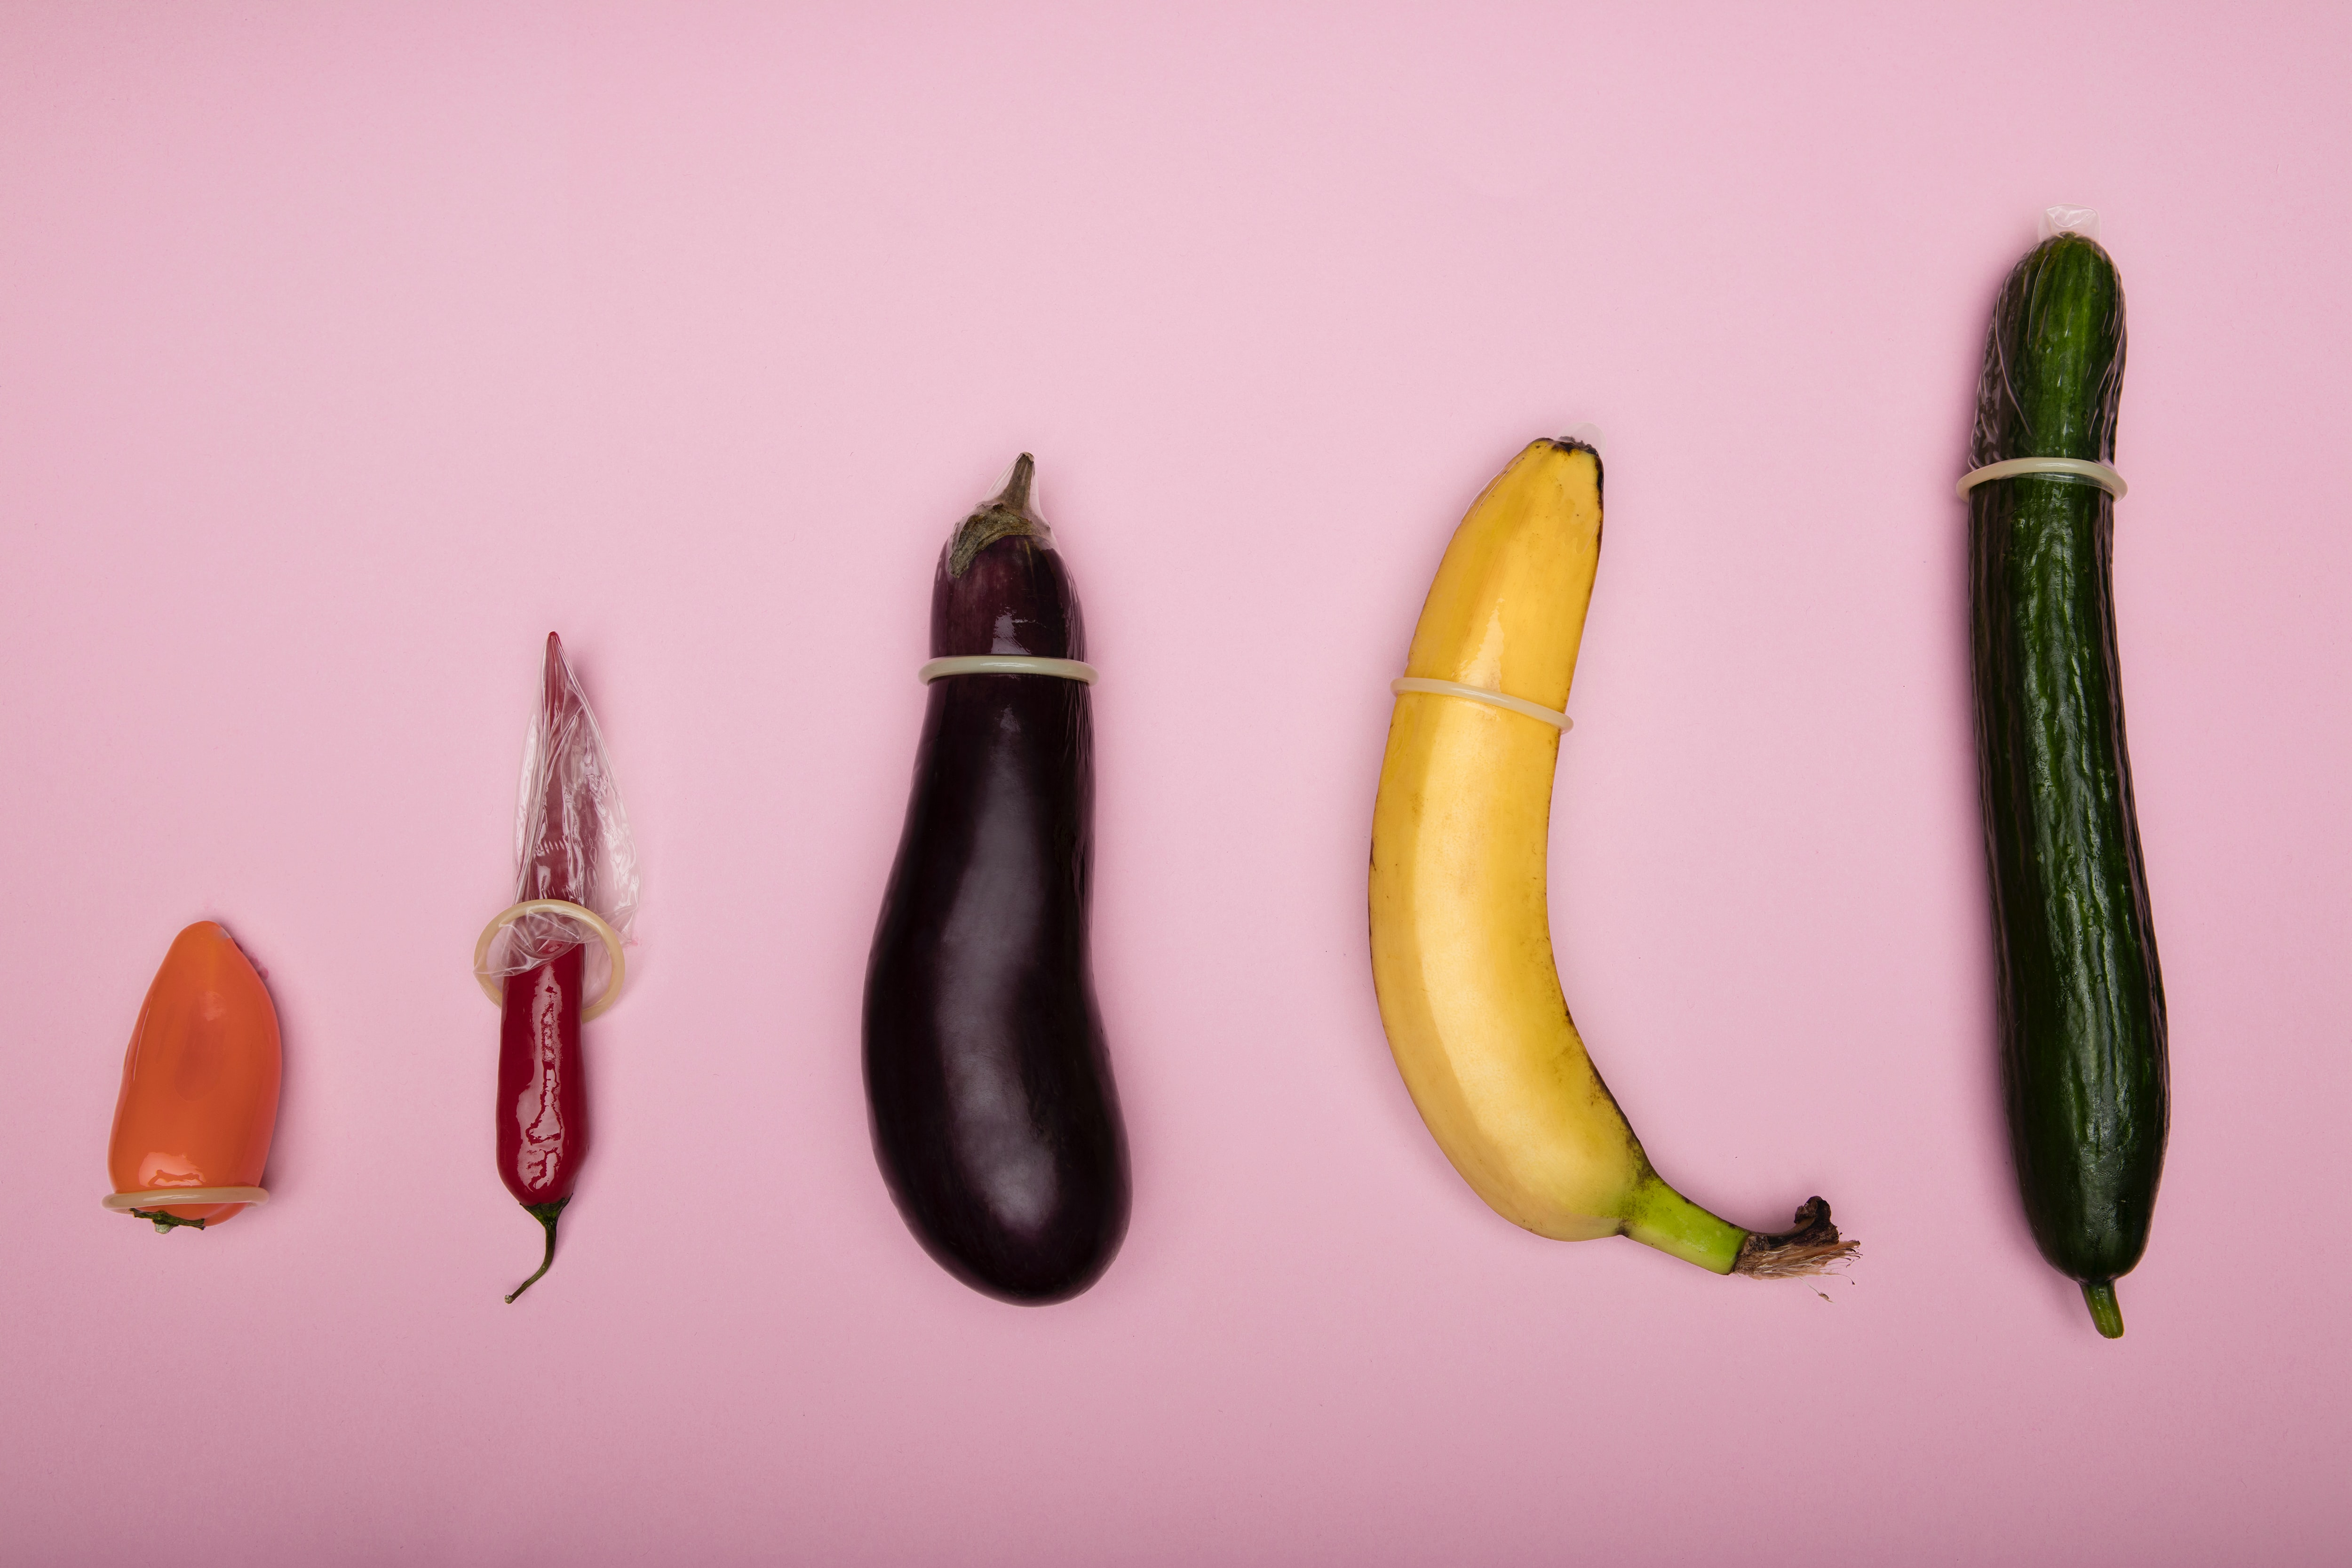 Two peppers, an eggplant, a banana, and a cucumber, all with condoms on, sit on a pink background.